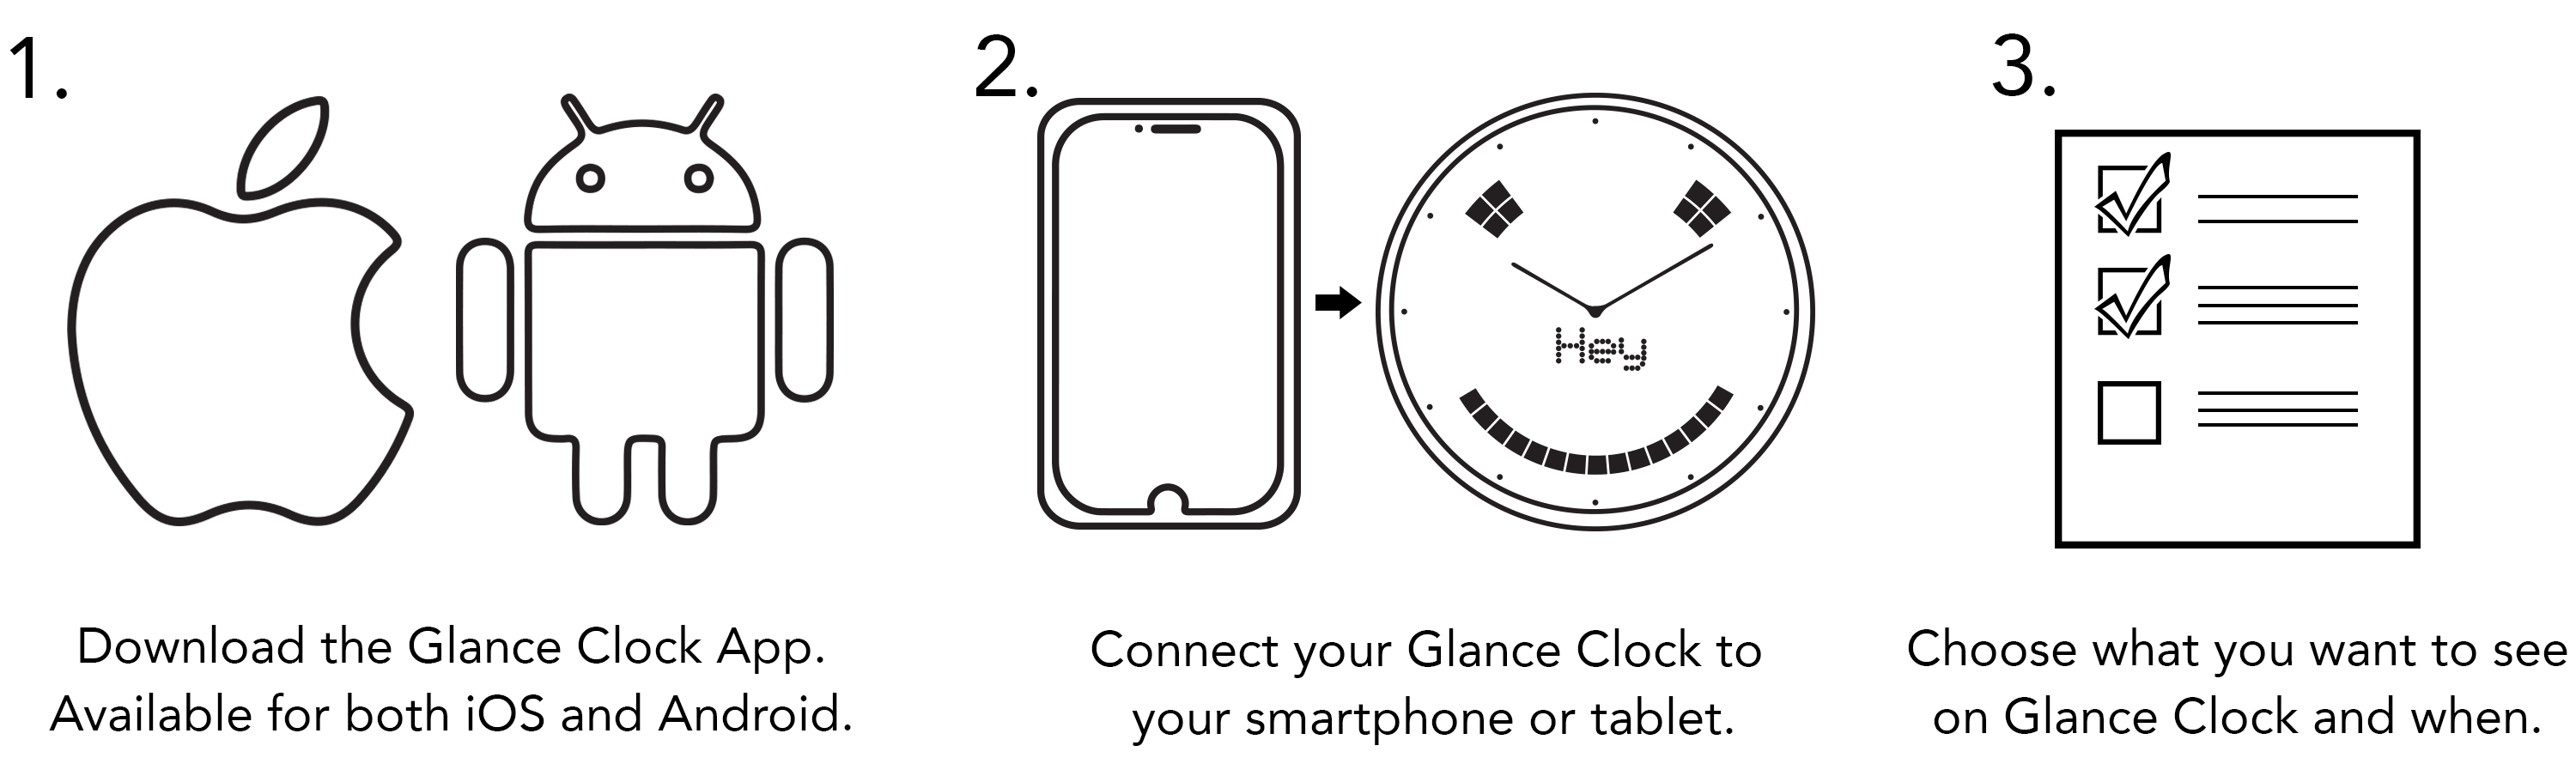 Glance Clock App for iOS and Android